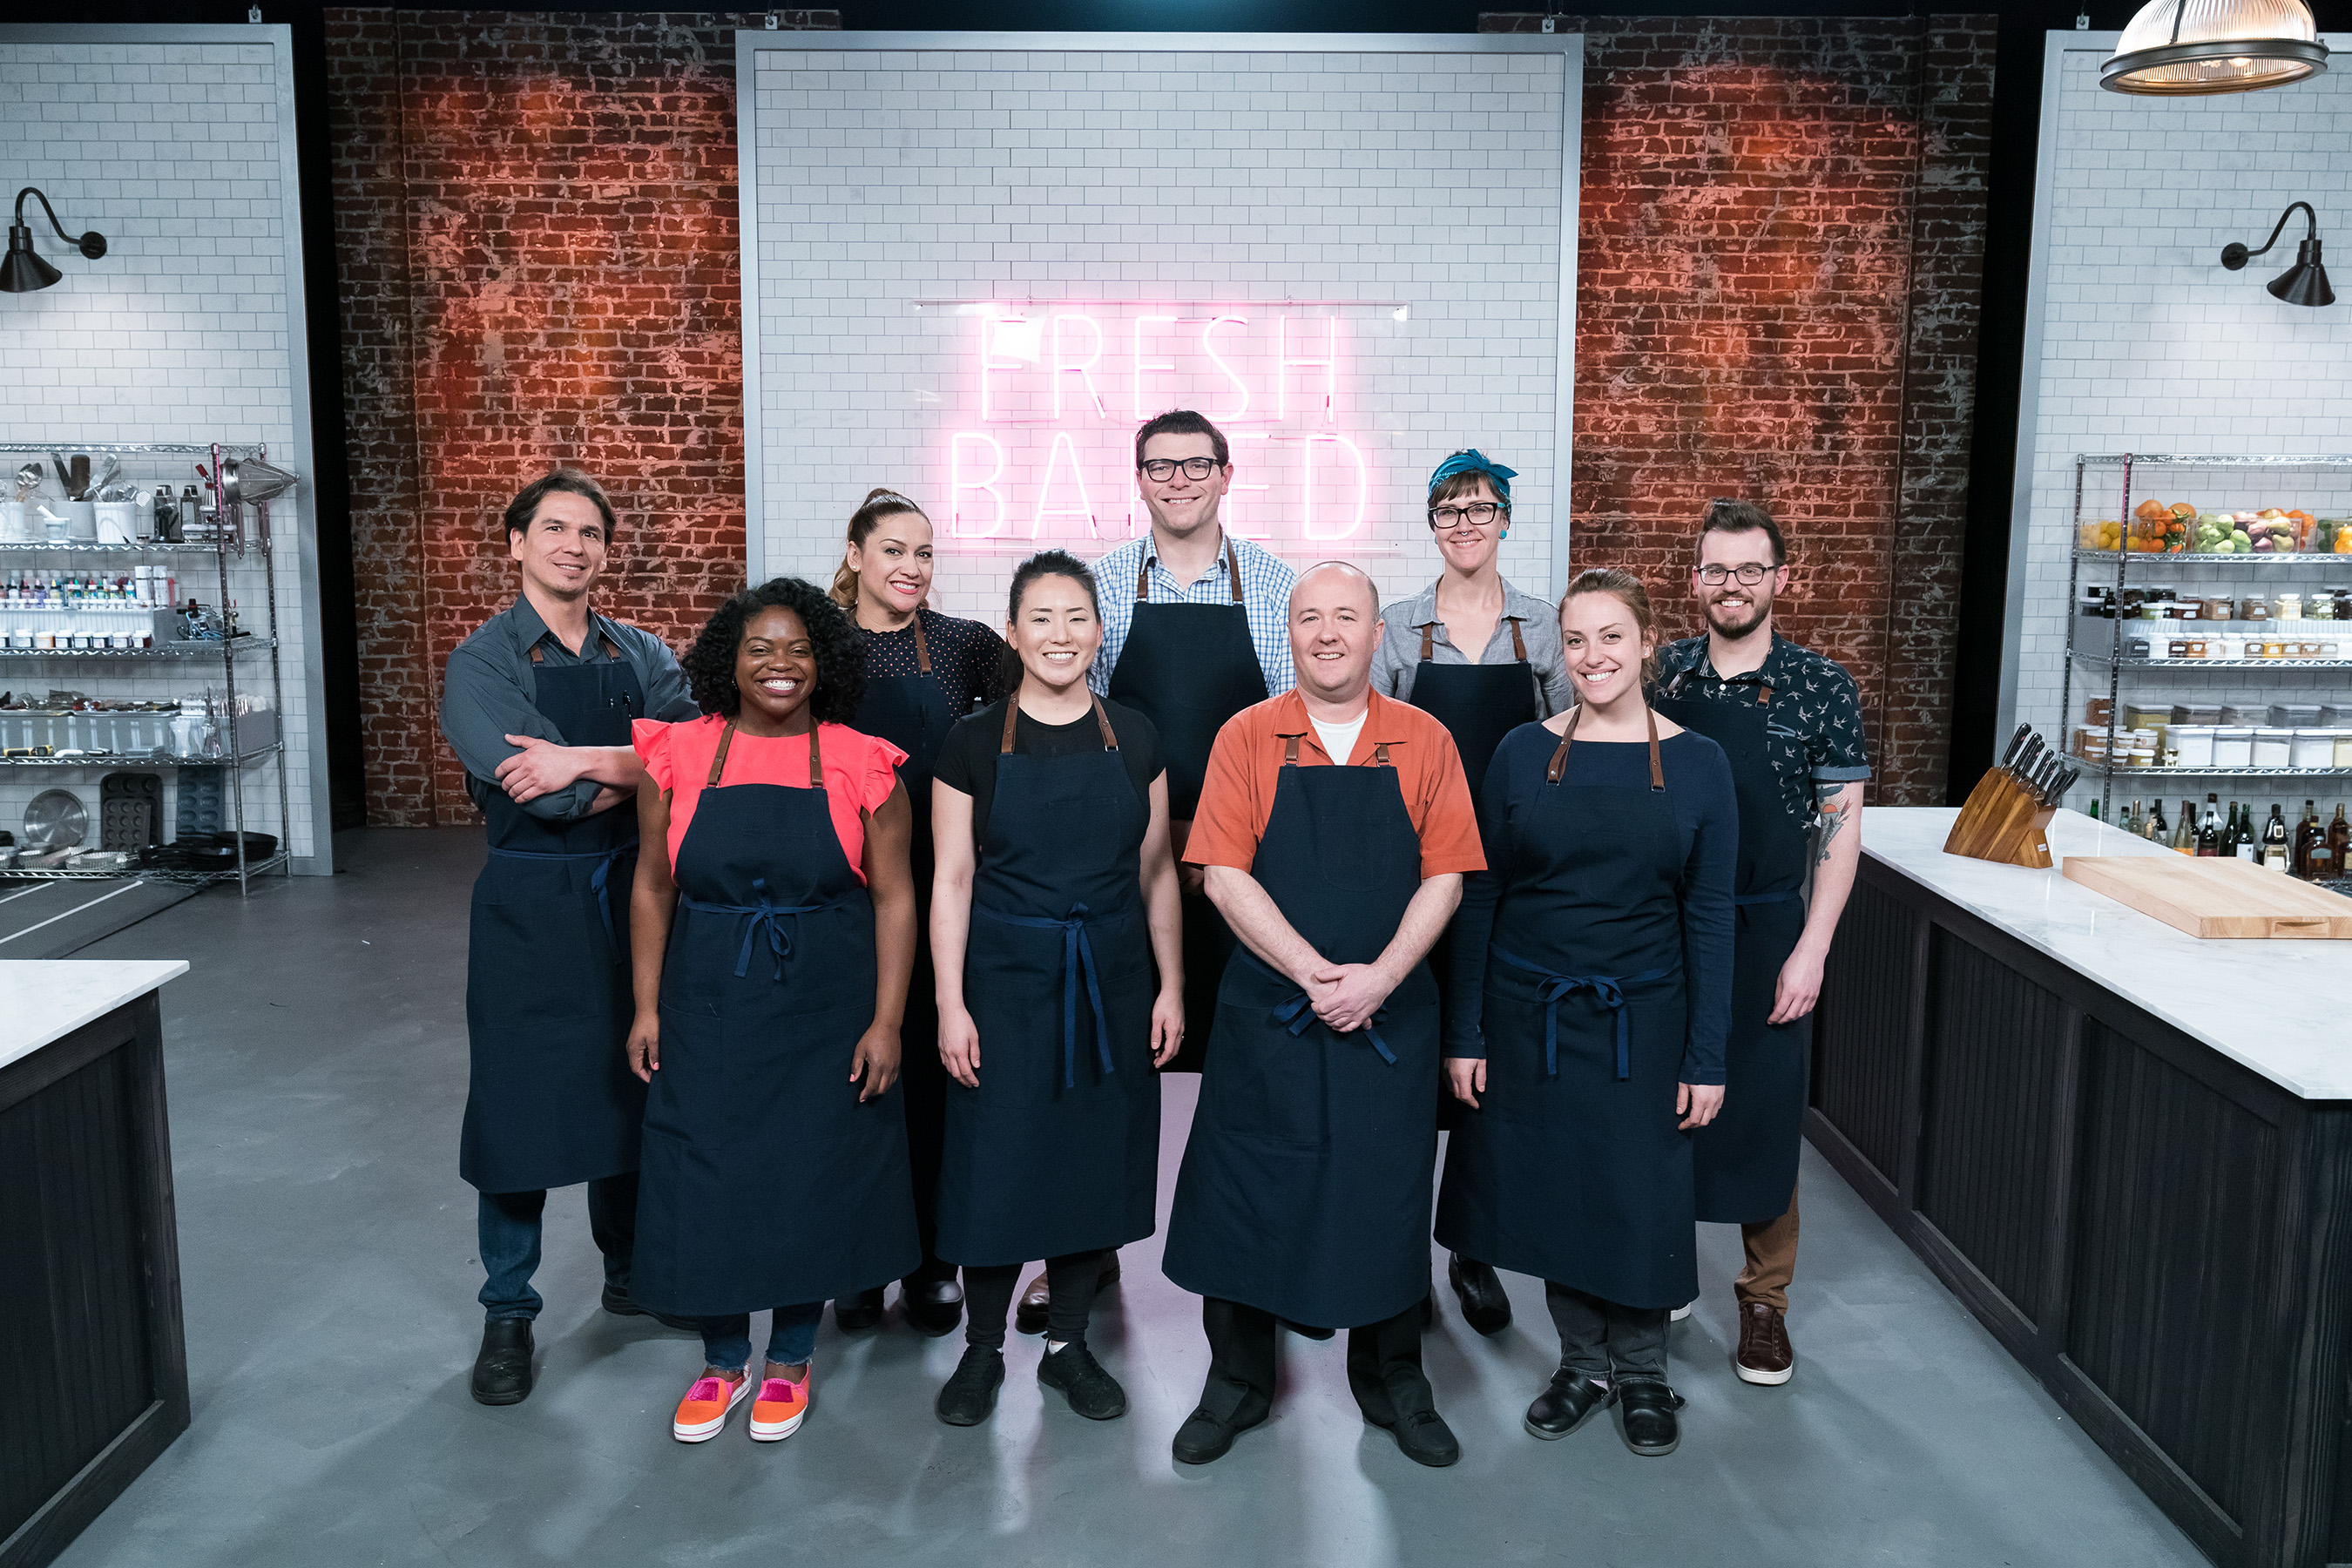 The contestants of Food Network's Best Baker in America